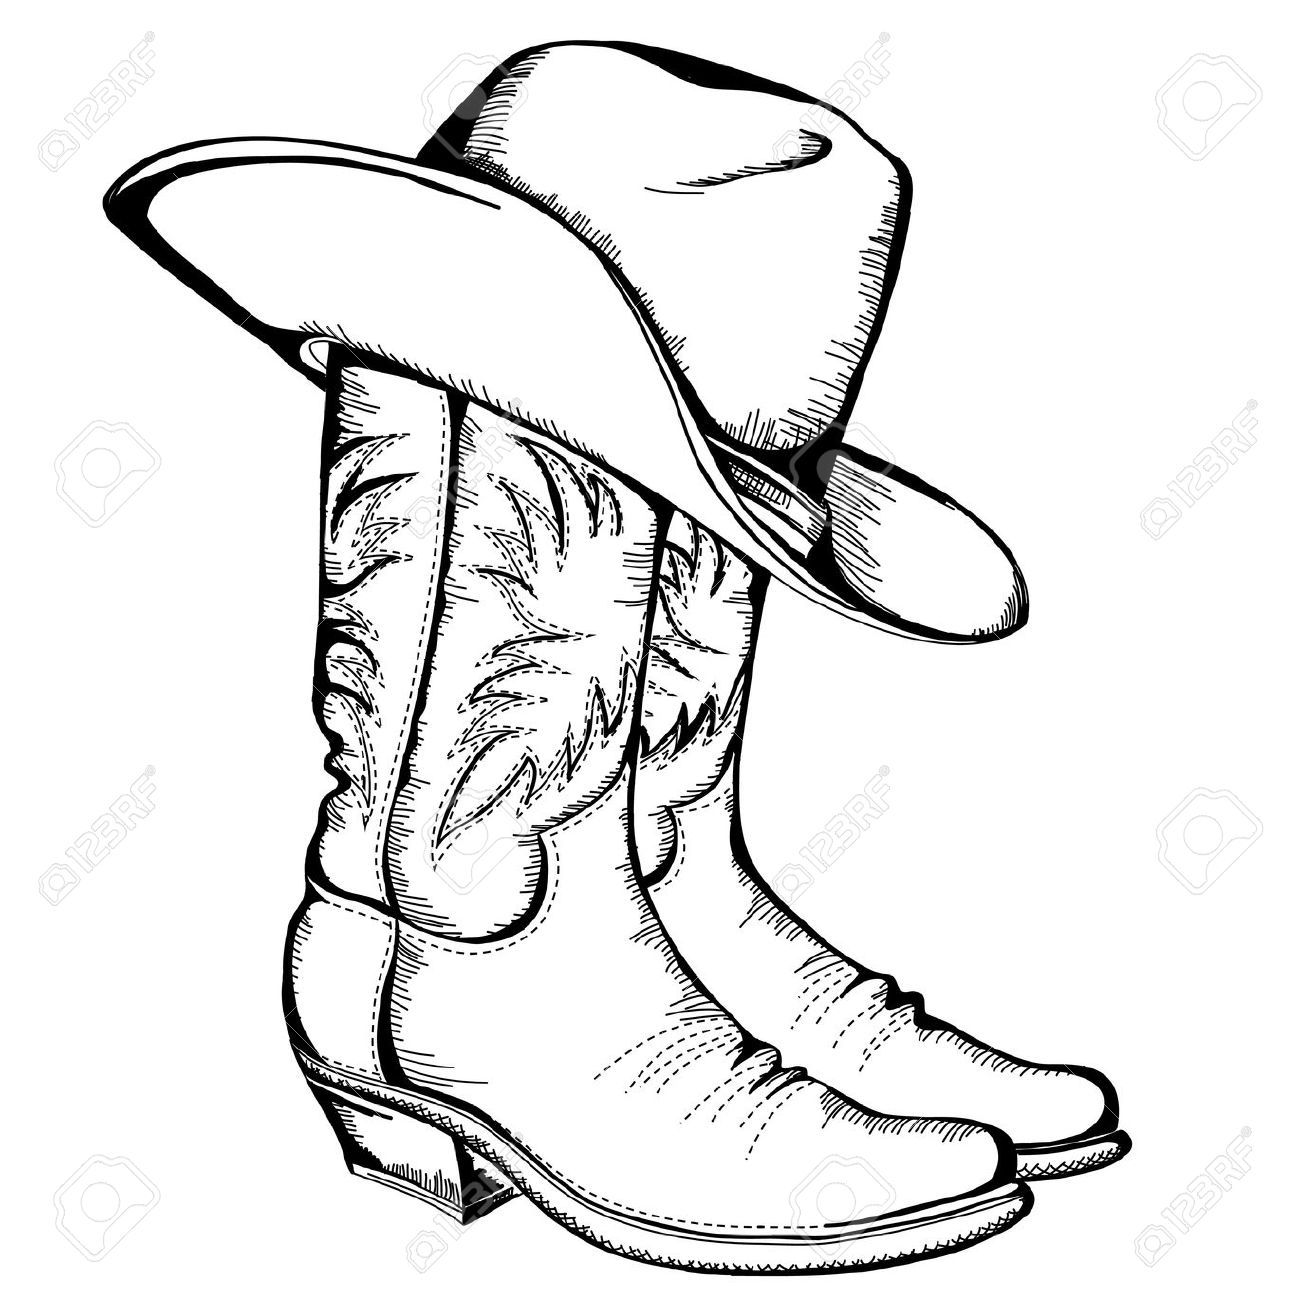 cowboy boots and hat graphic illustration royalty free cliparts vectors and stock illustration image 17229564  [ 1300 x 1300 Pixel ]